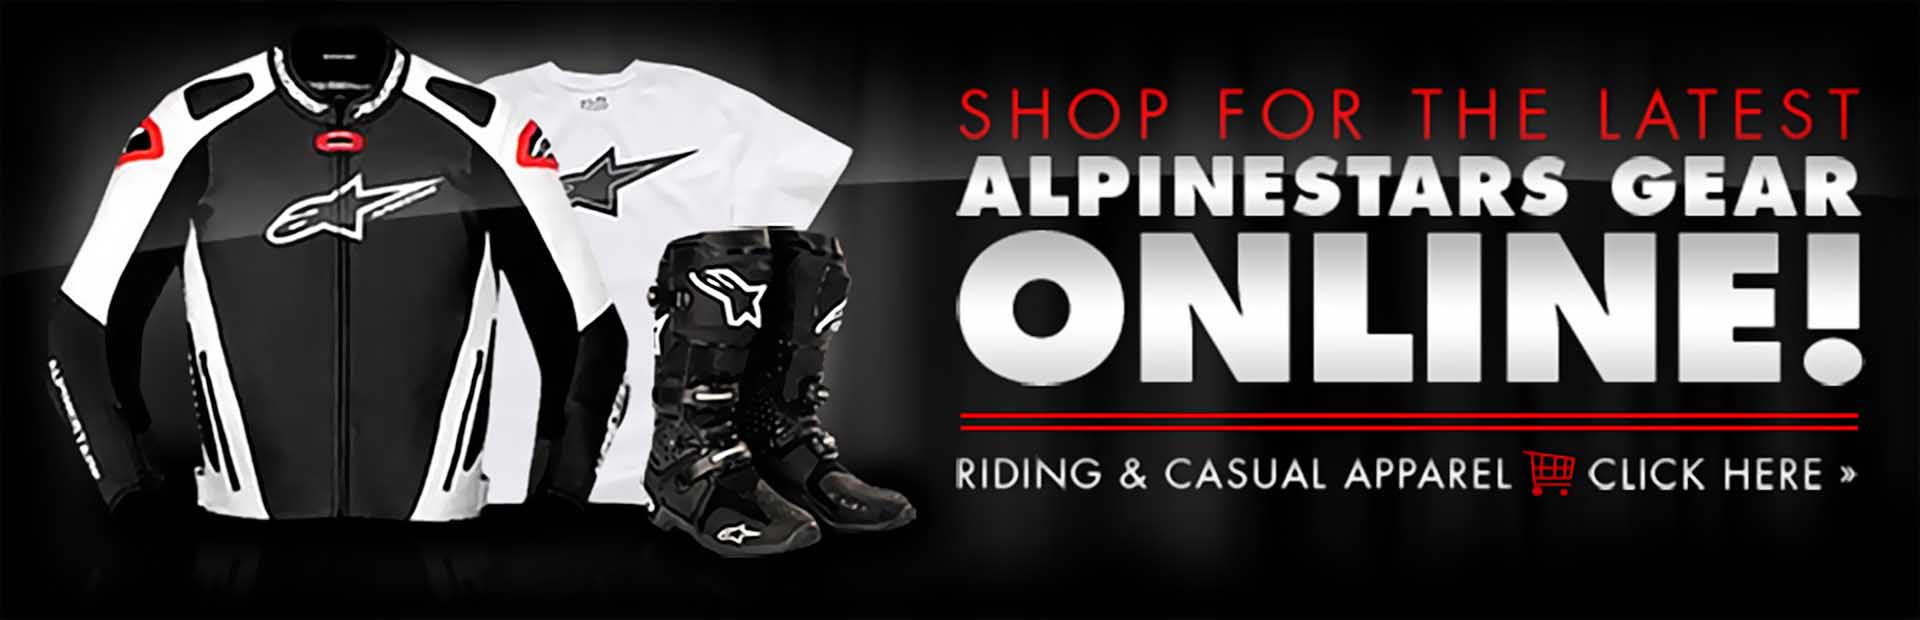 Alpinestars Gear, Apparel and Accessories